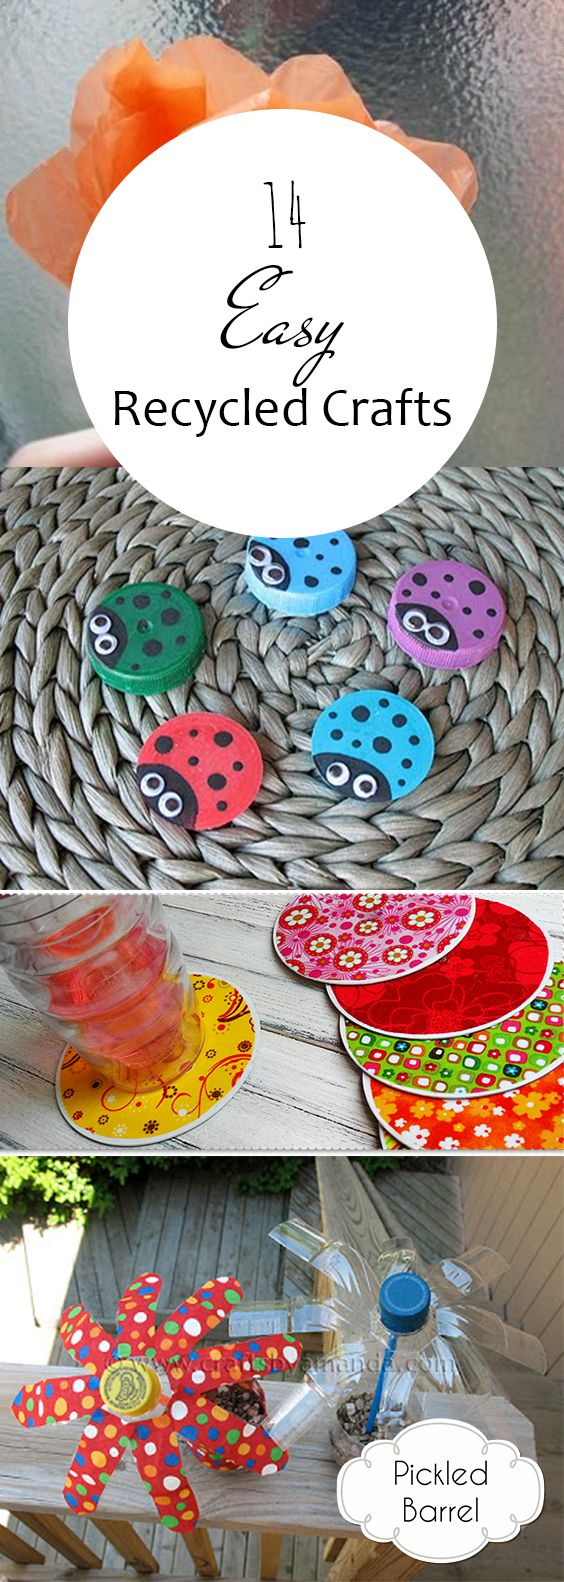 14 Easy Recycled Crafts